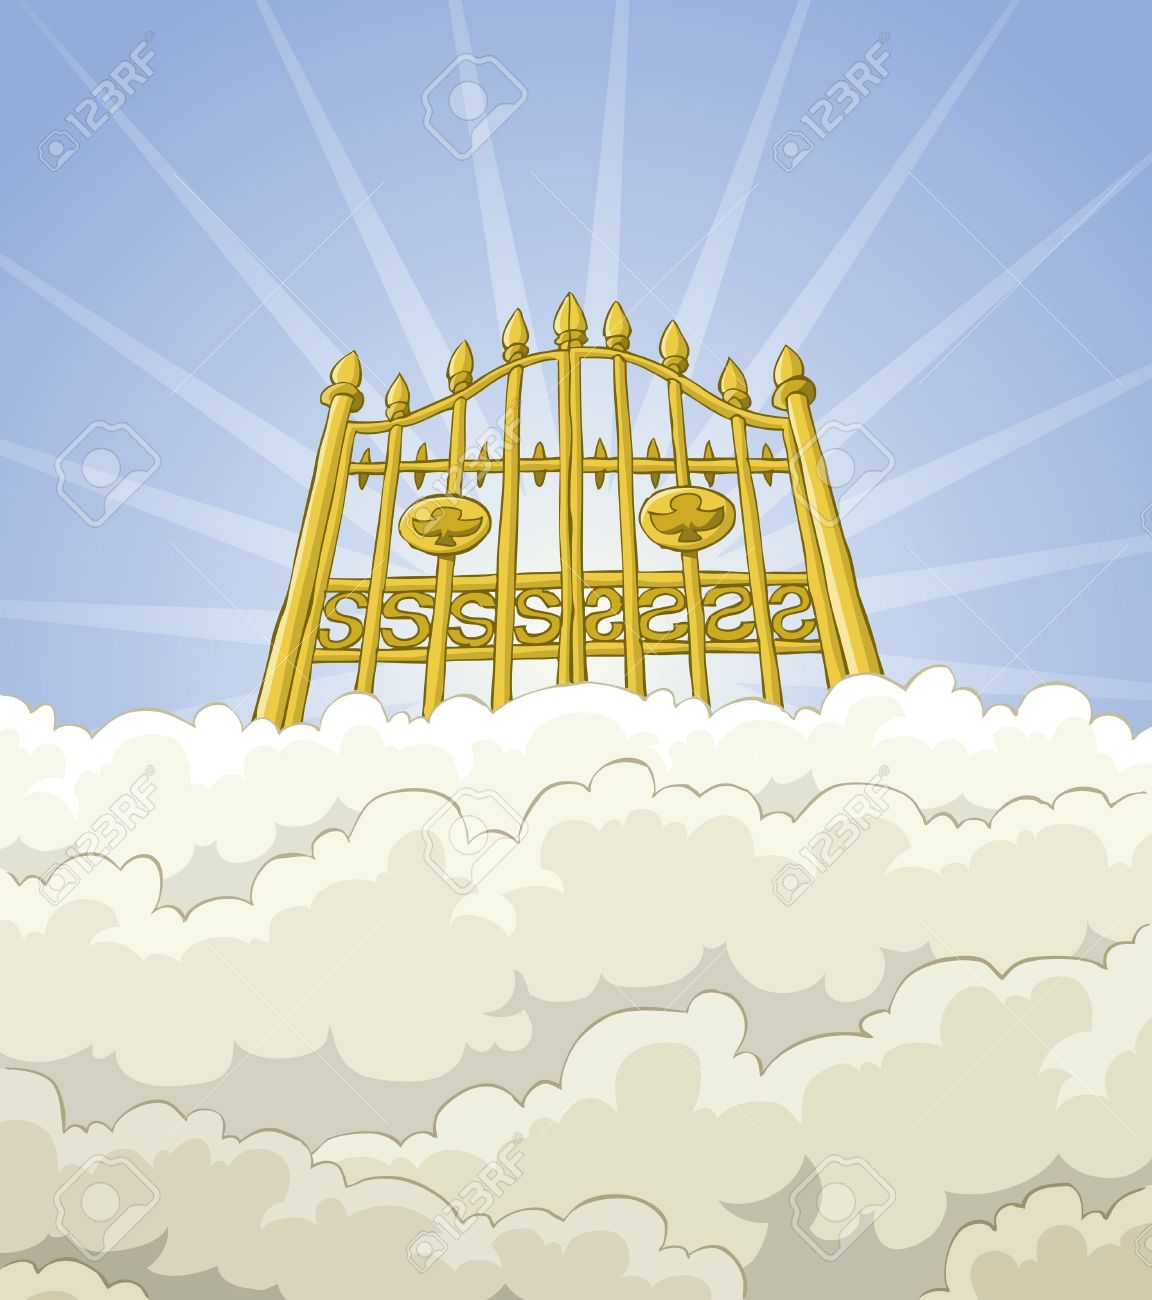 Gate clipart god Pearls heavens of Heals God